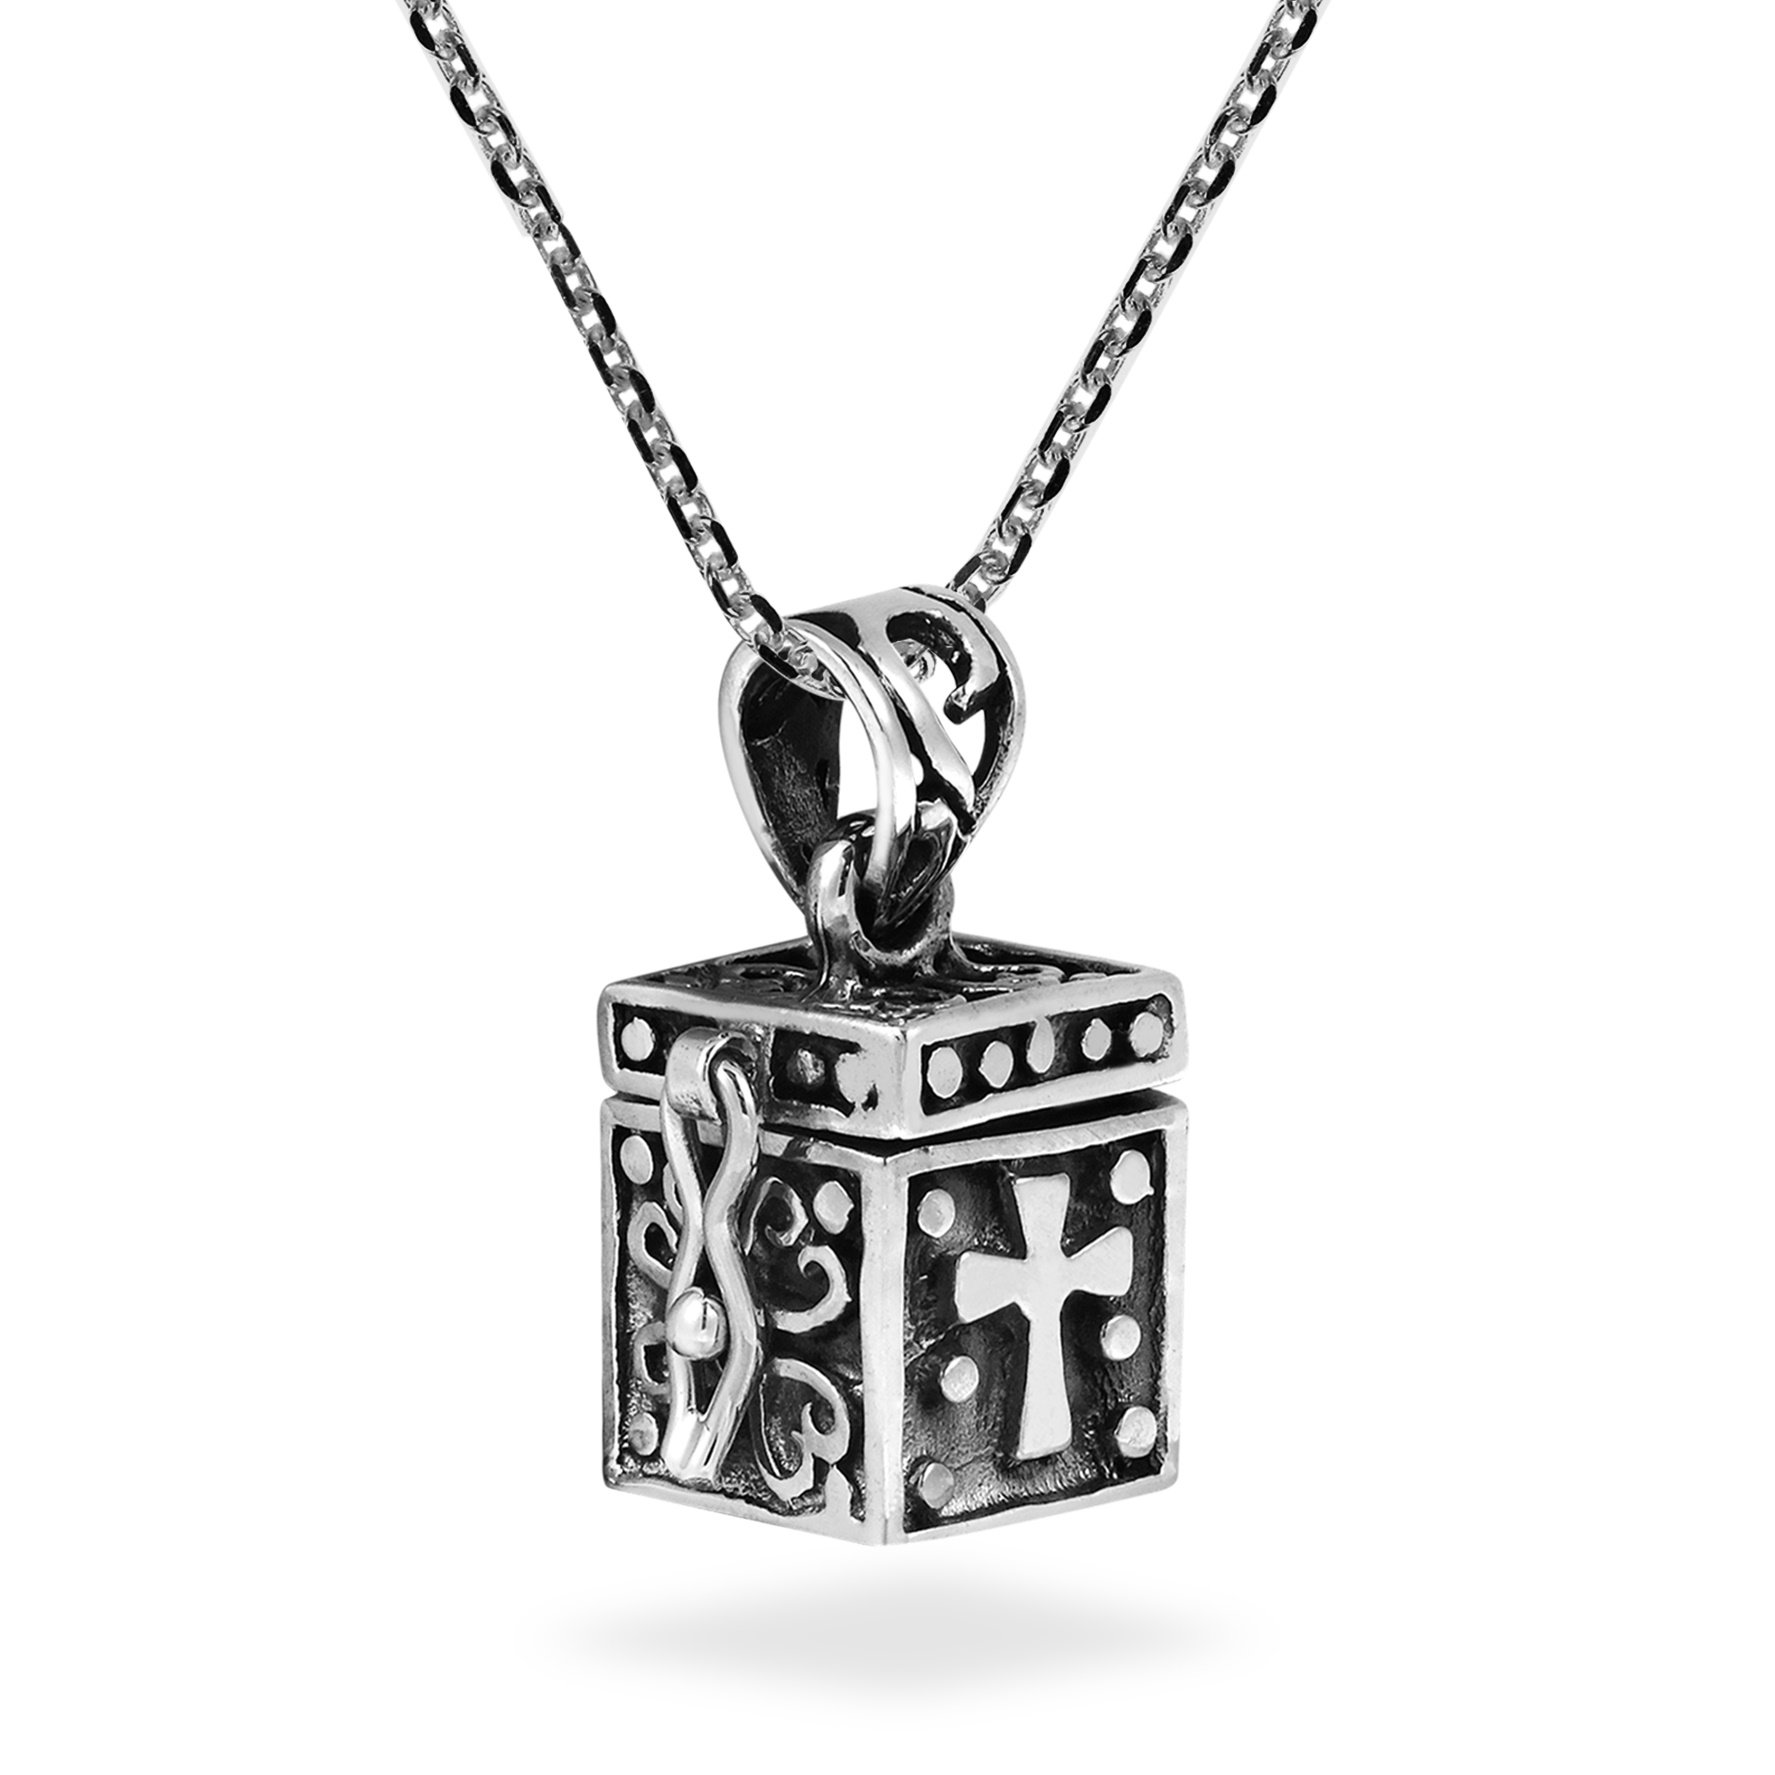 AeraVida Christian Prayer Box Locket .925 Sterling Silver Pendant Necklace